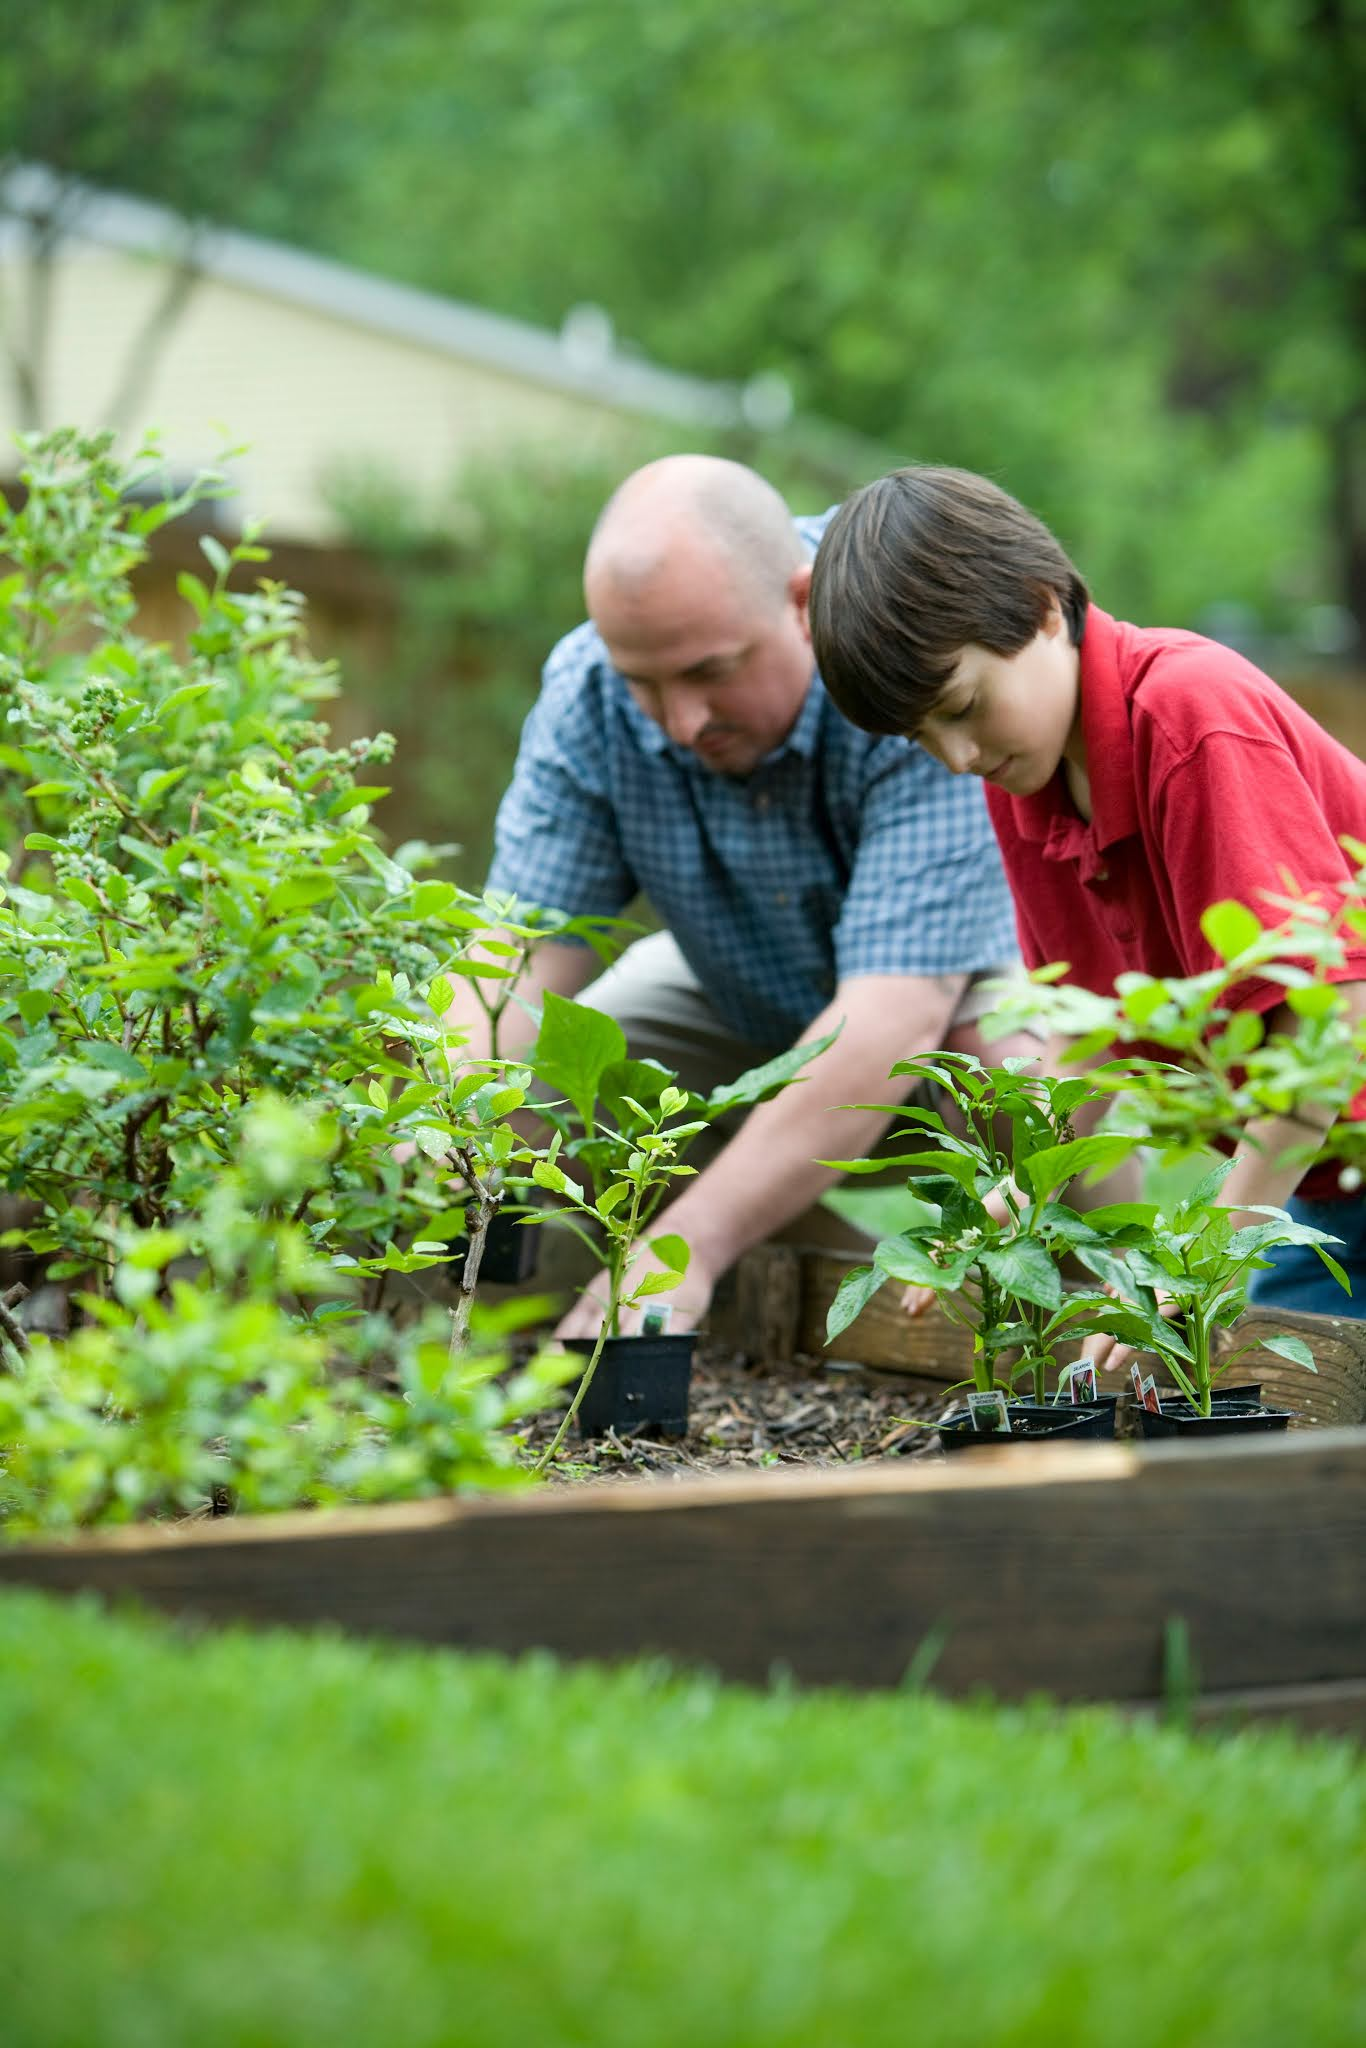 Things You Need To Keep Your Garden Clean